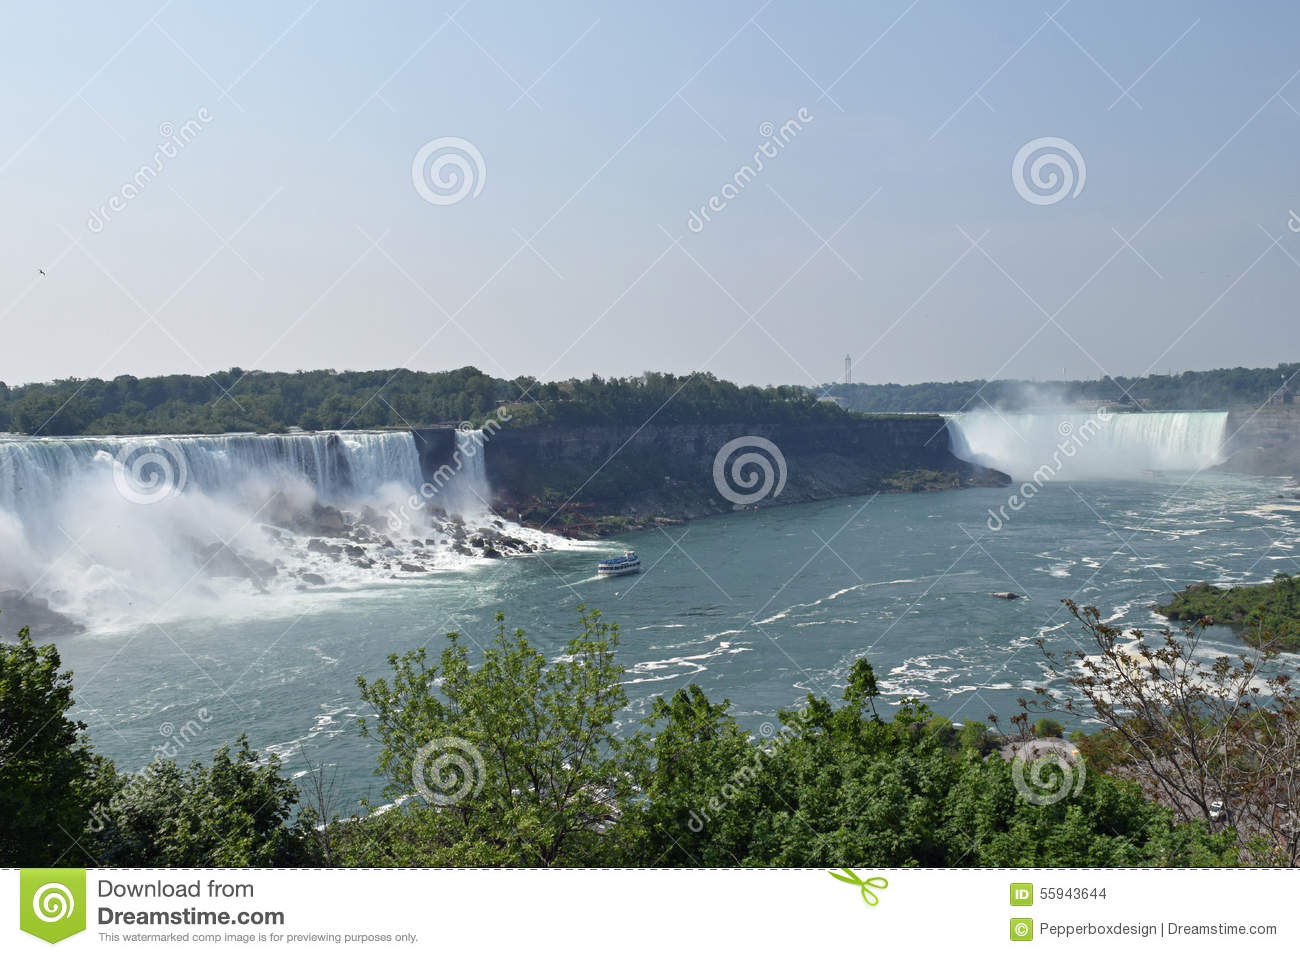 niagara falls online dating Niagara falls is the collective name for three waterfalls that straddle the international border between the canadian province of ontario and the american .